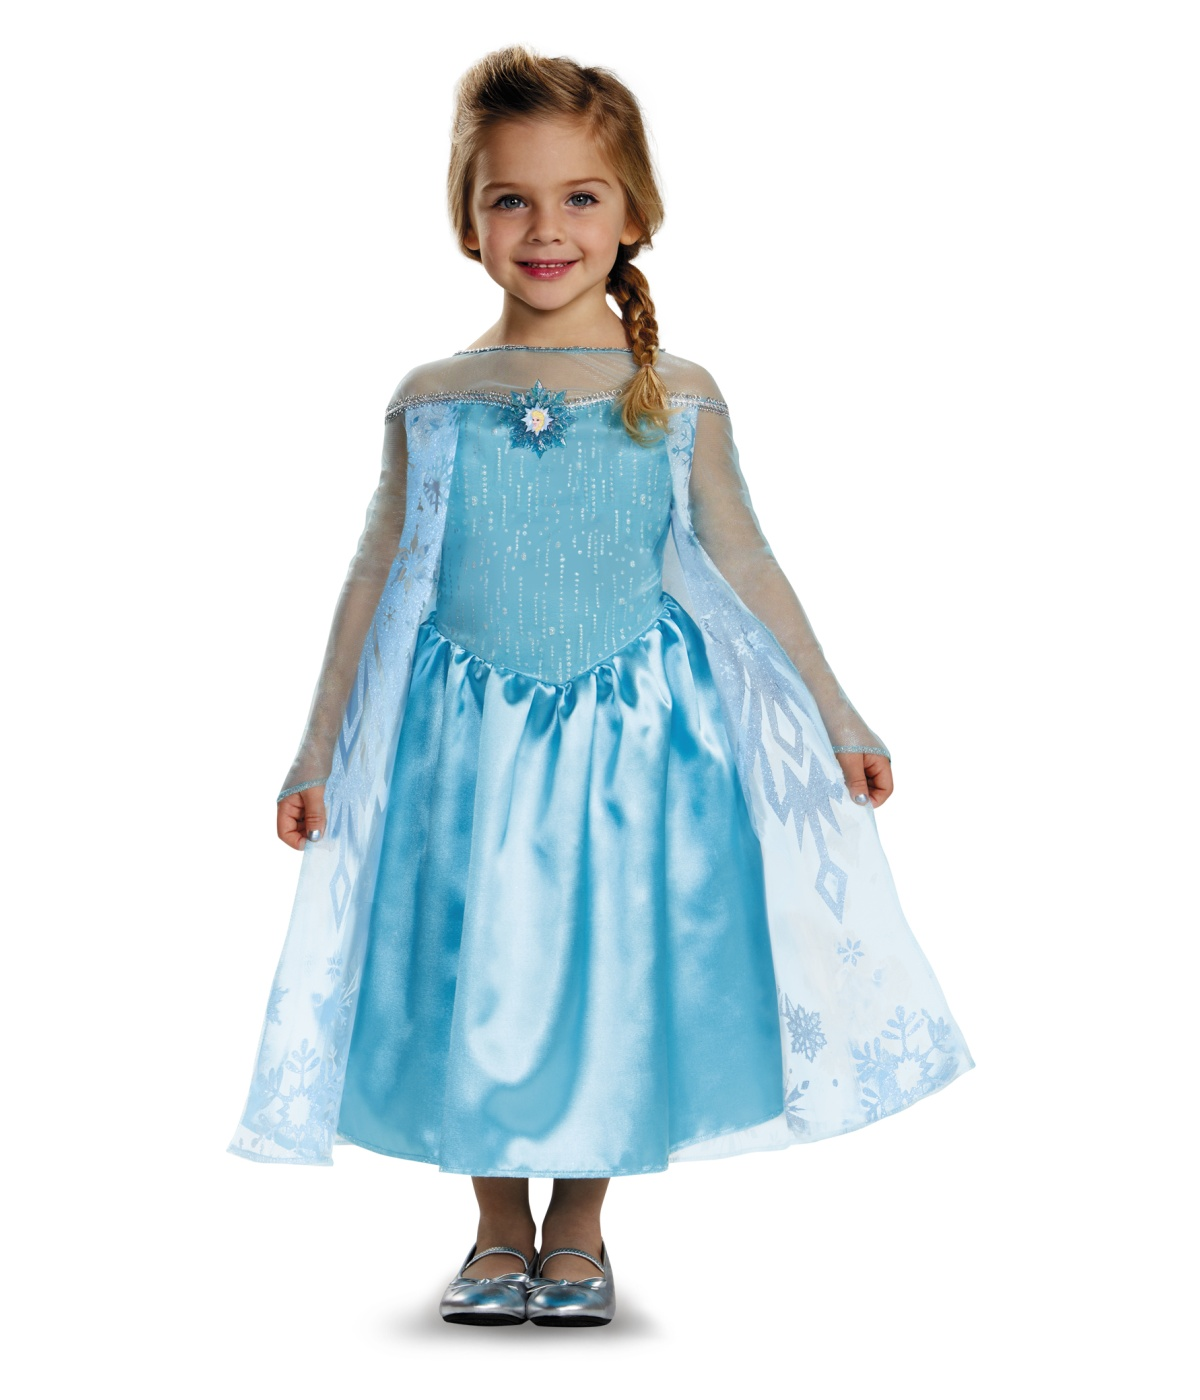 Frozen Elsa Toddler Girls Disney Costume Costumes